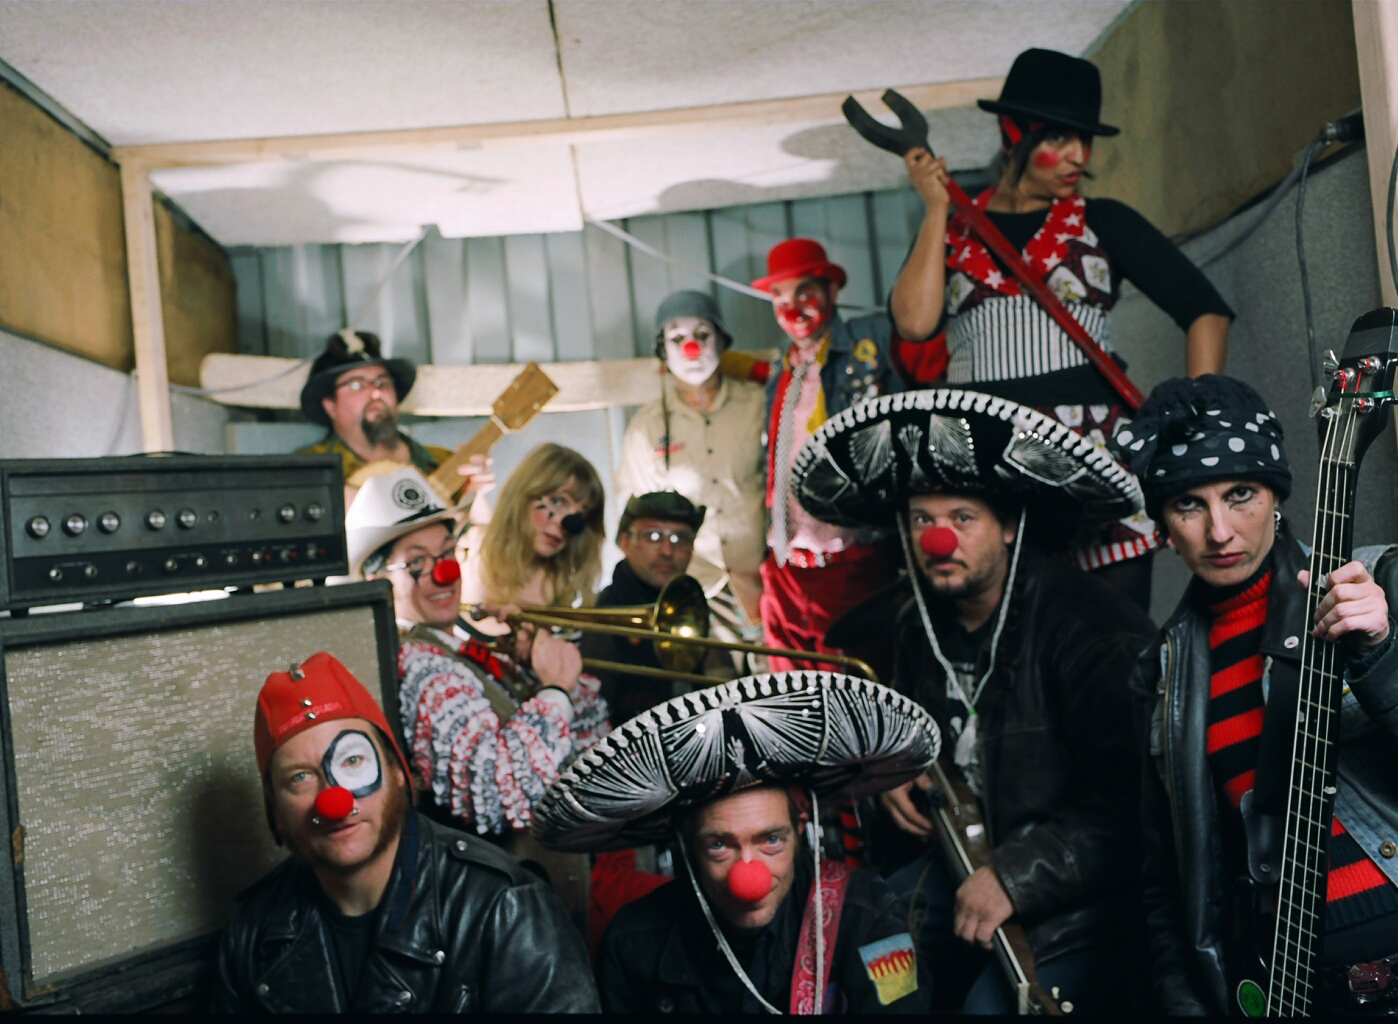 Clowns in the Band Room by Angela Scrivani